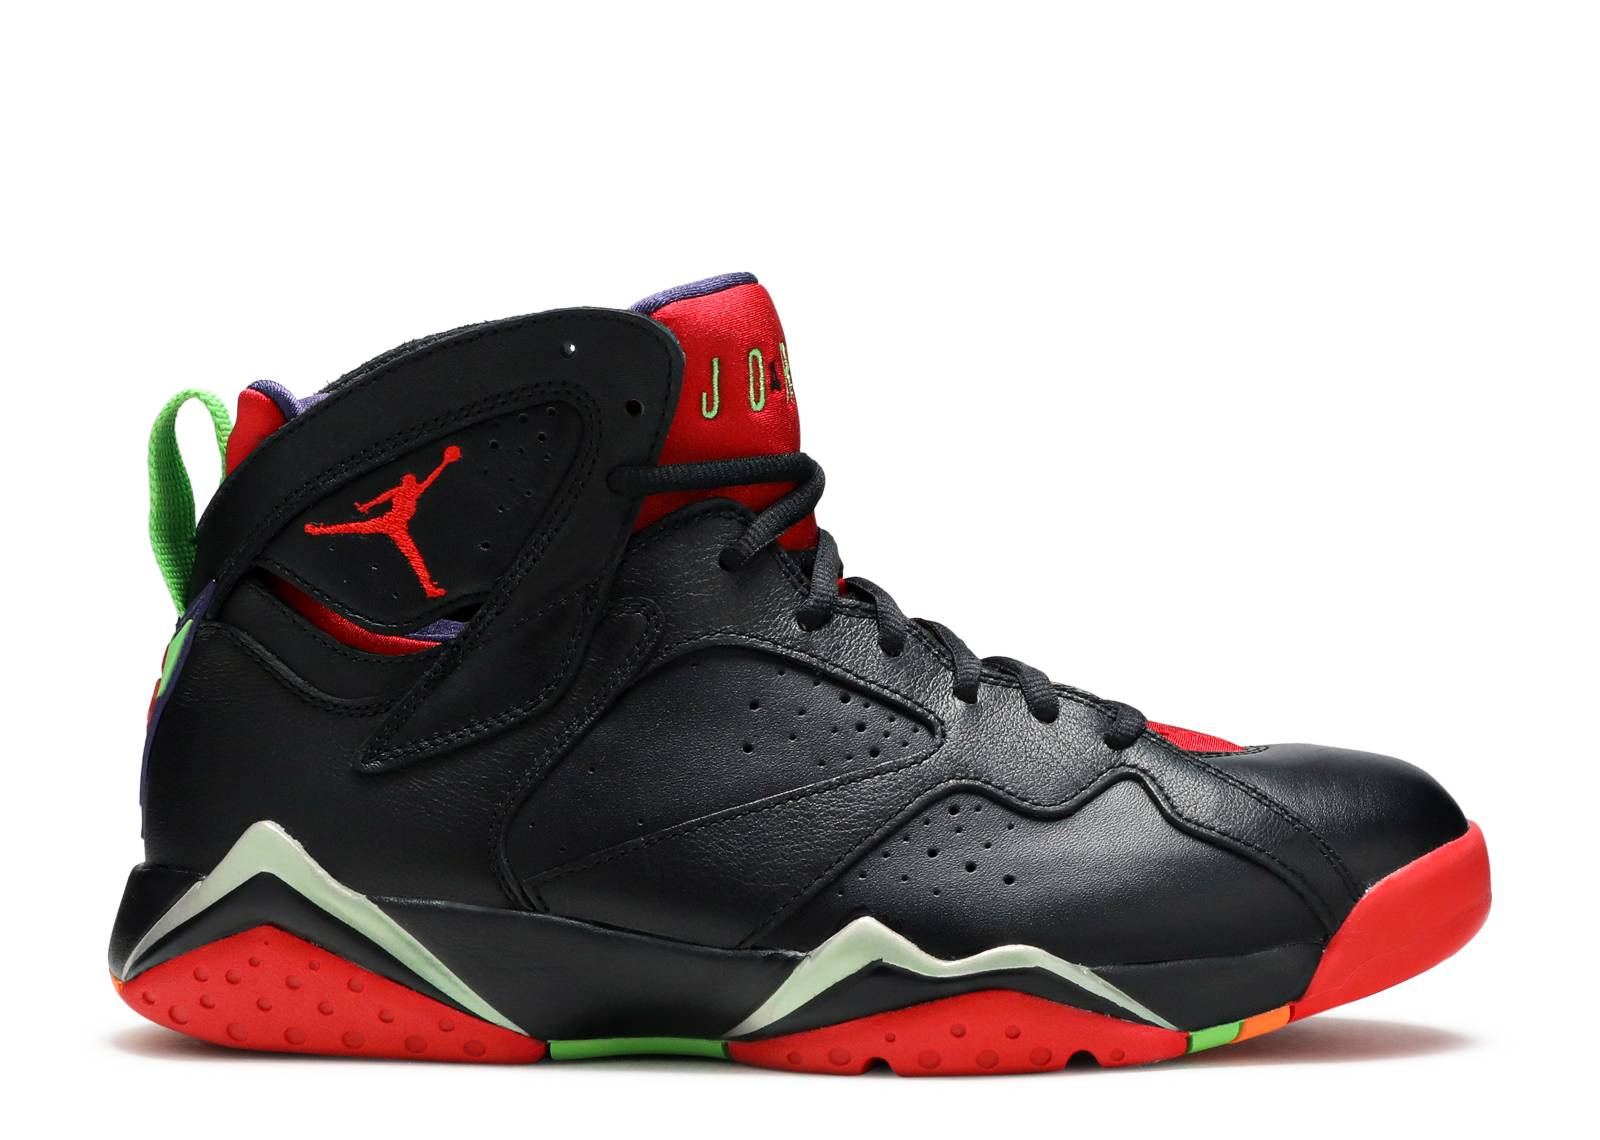 c5fdf8c8b64863 Air Jordan 7 Retro